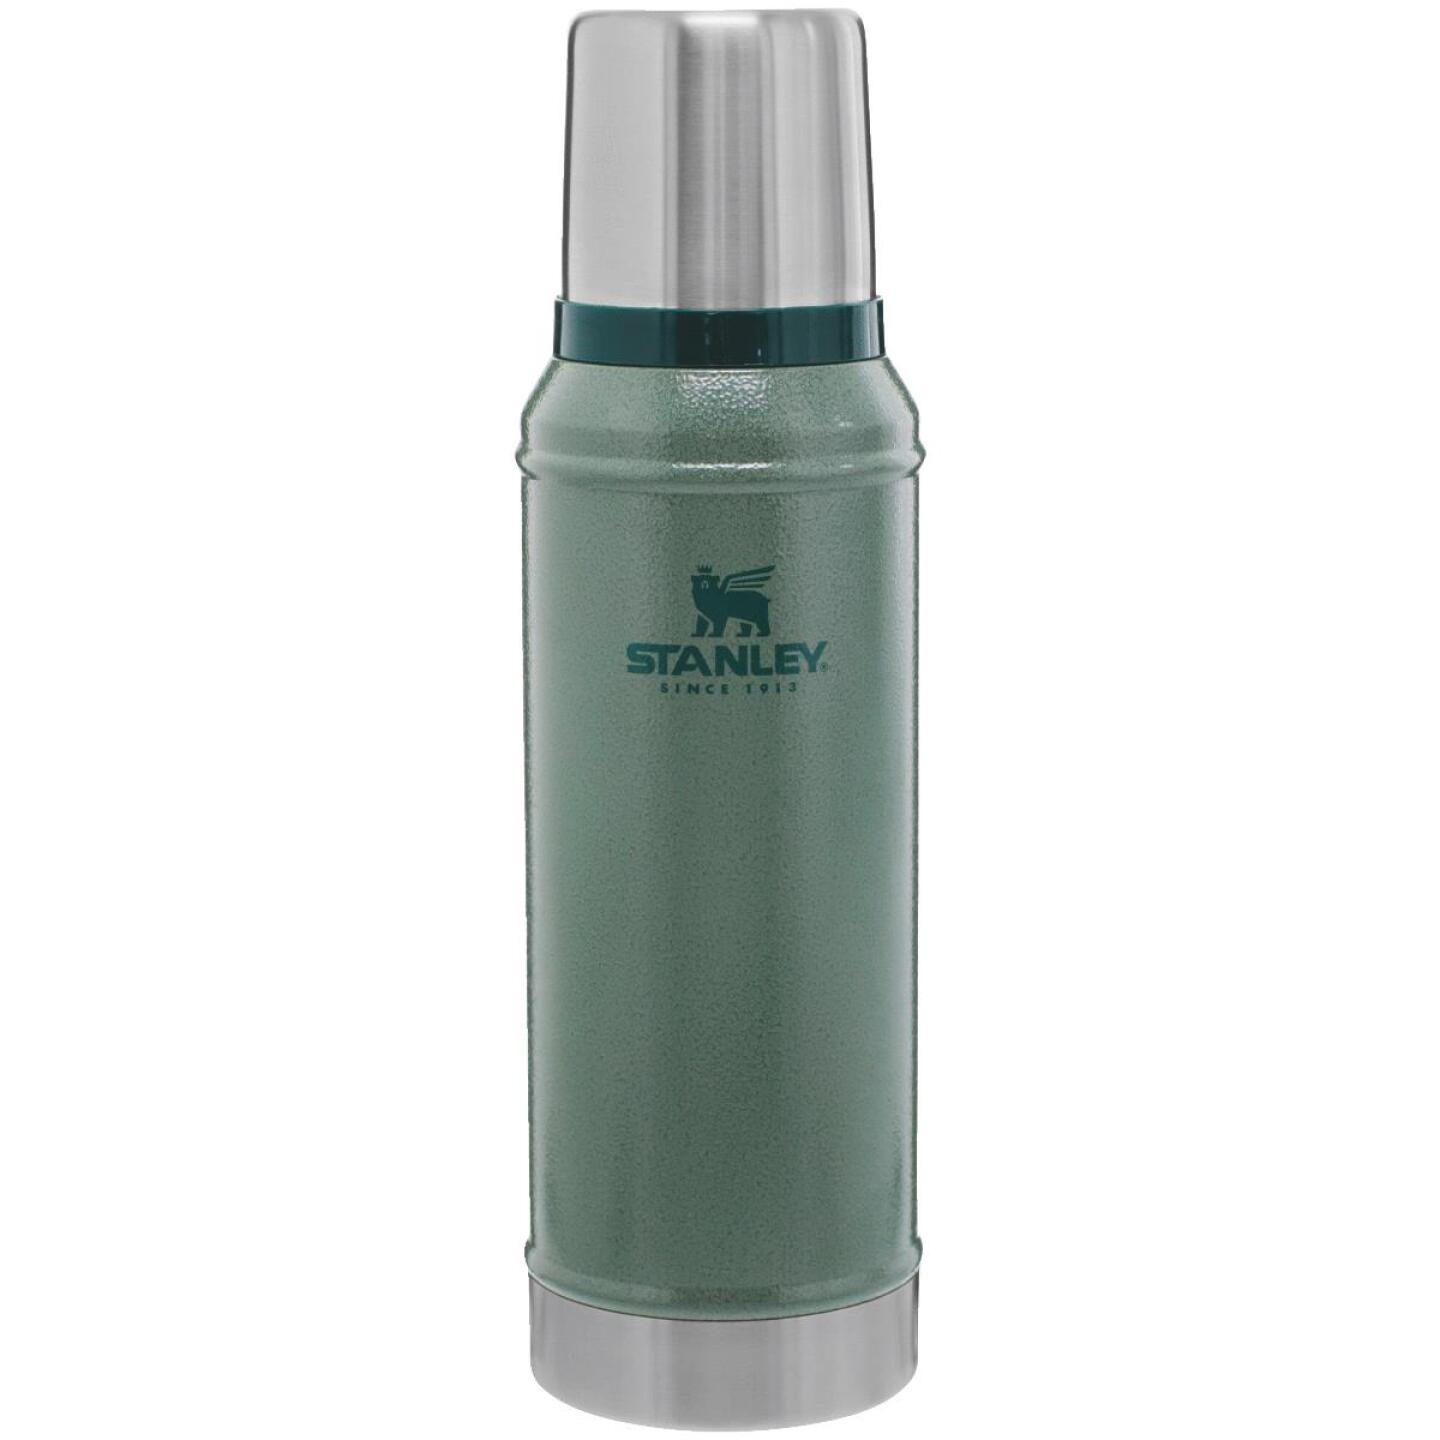 Stanley 1.1 Qt. Green Stainless Steel Insulated Vacuum Bottle Image 1